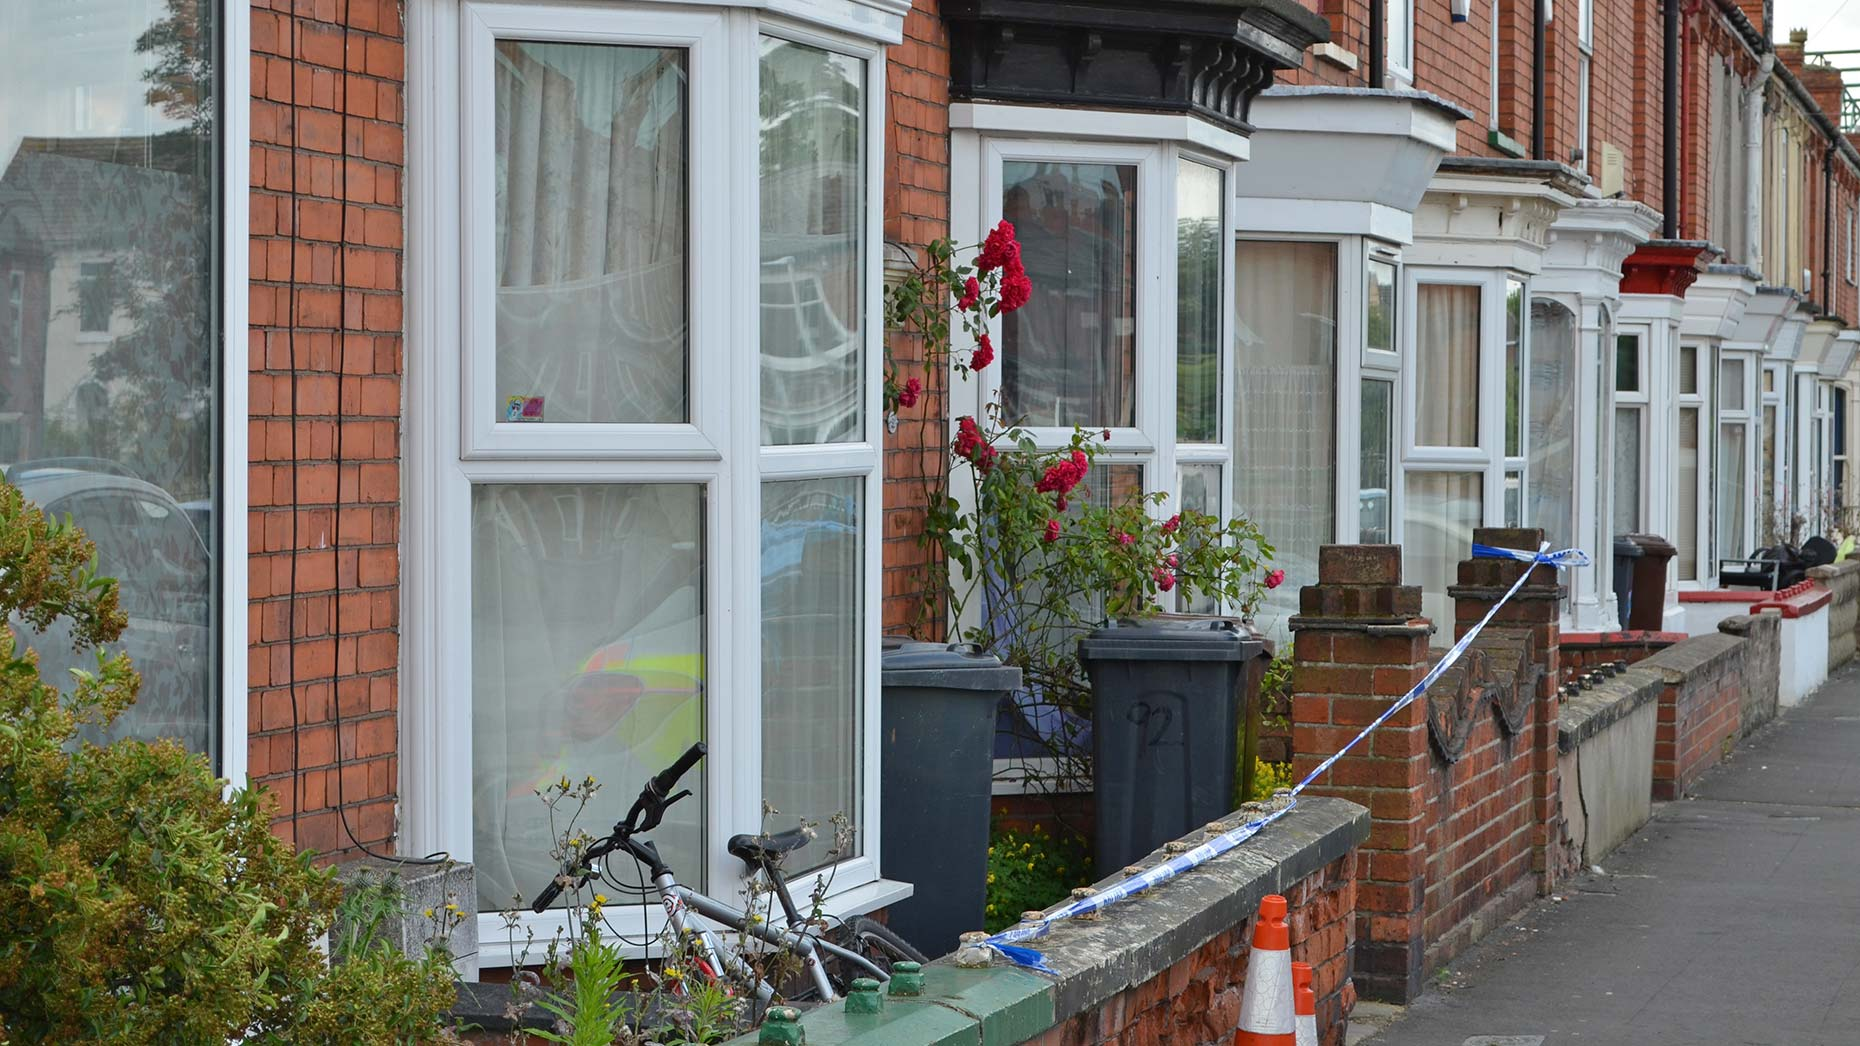 The home on Sincil Bank where the body was found.